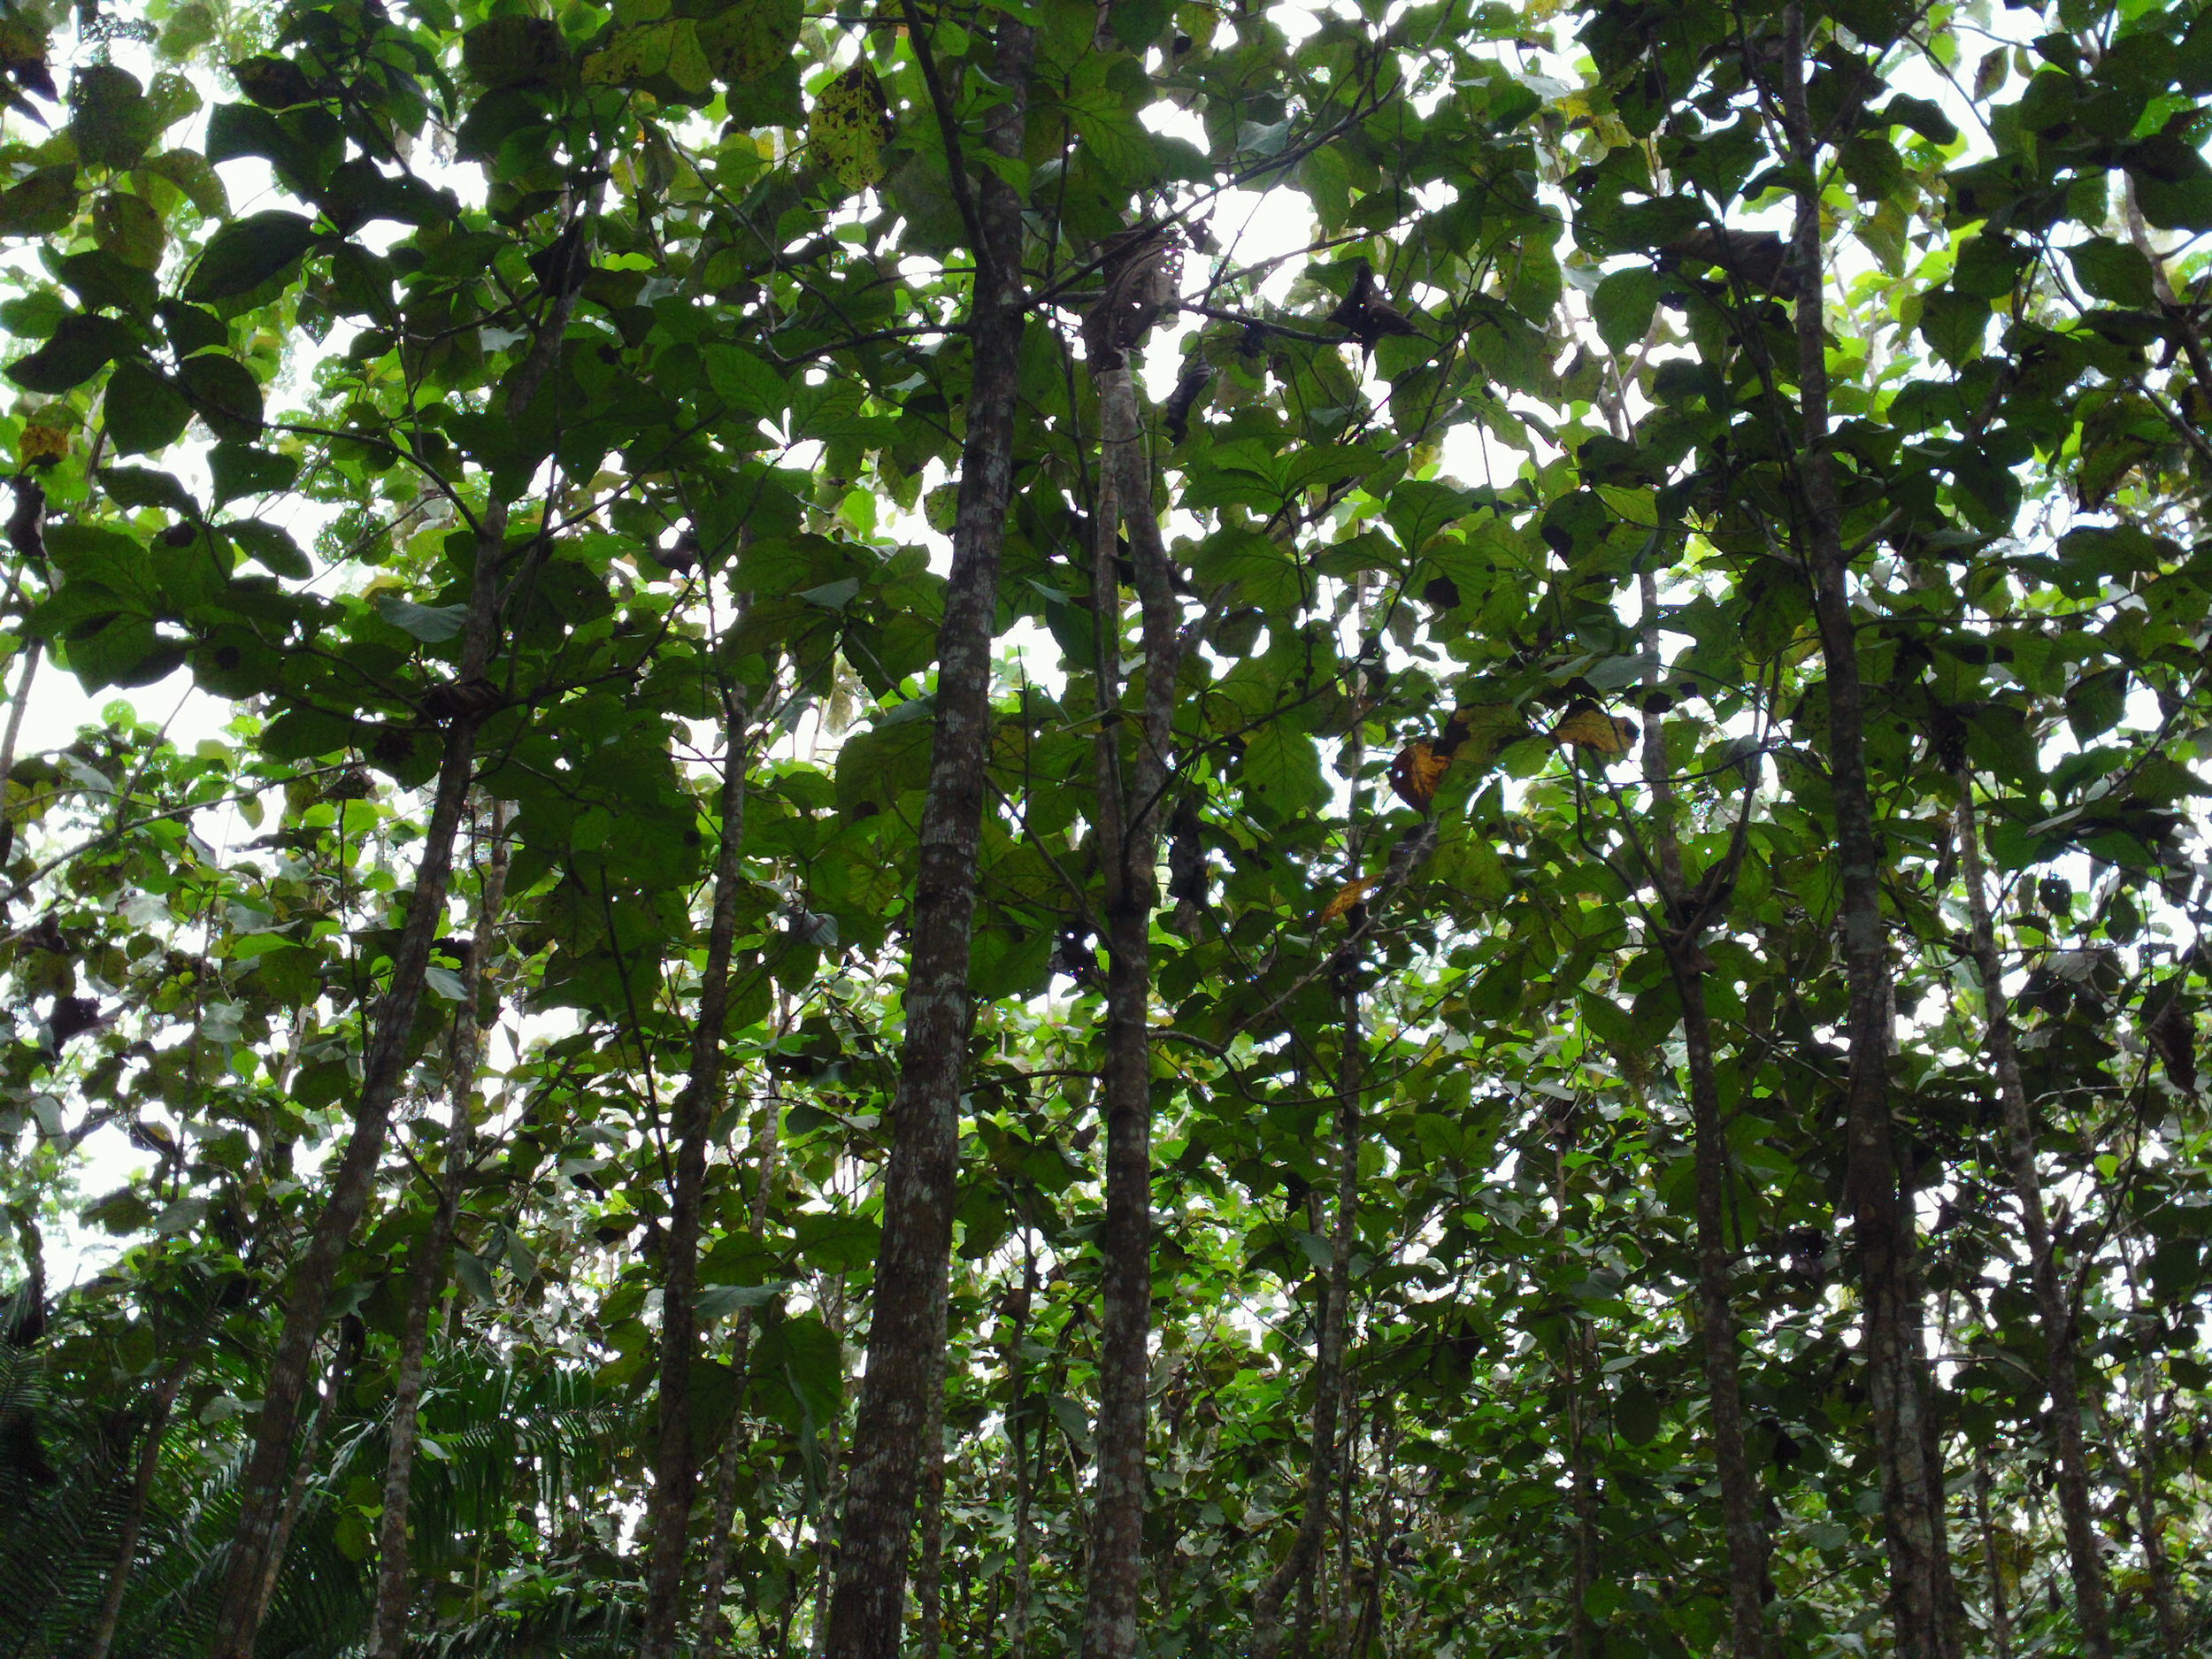 The crowns of a stand of teak trees begins to close, meaning they need to be thinned